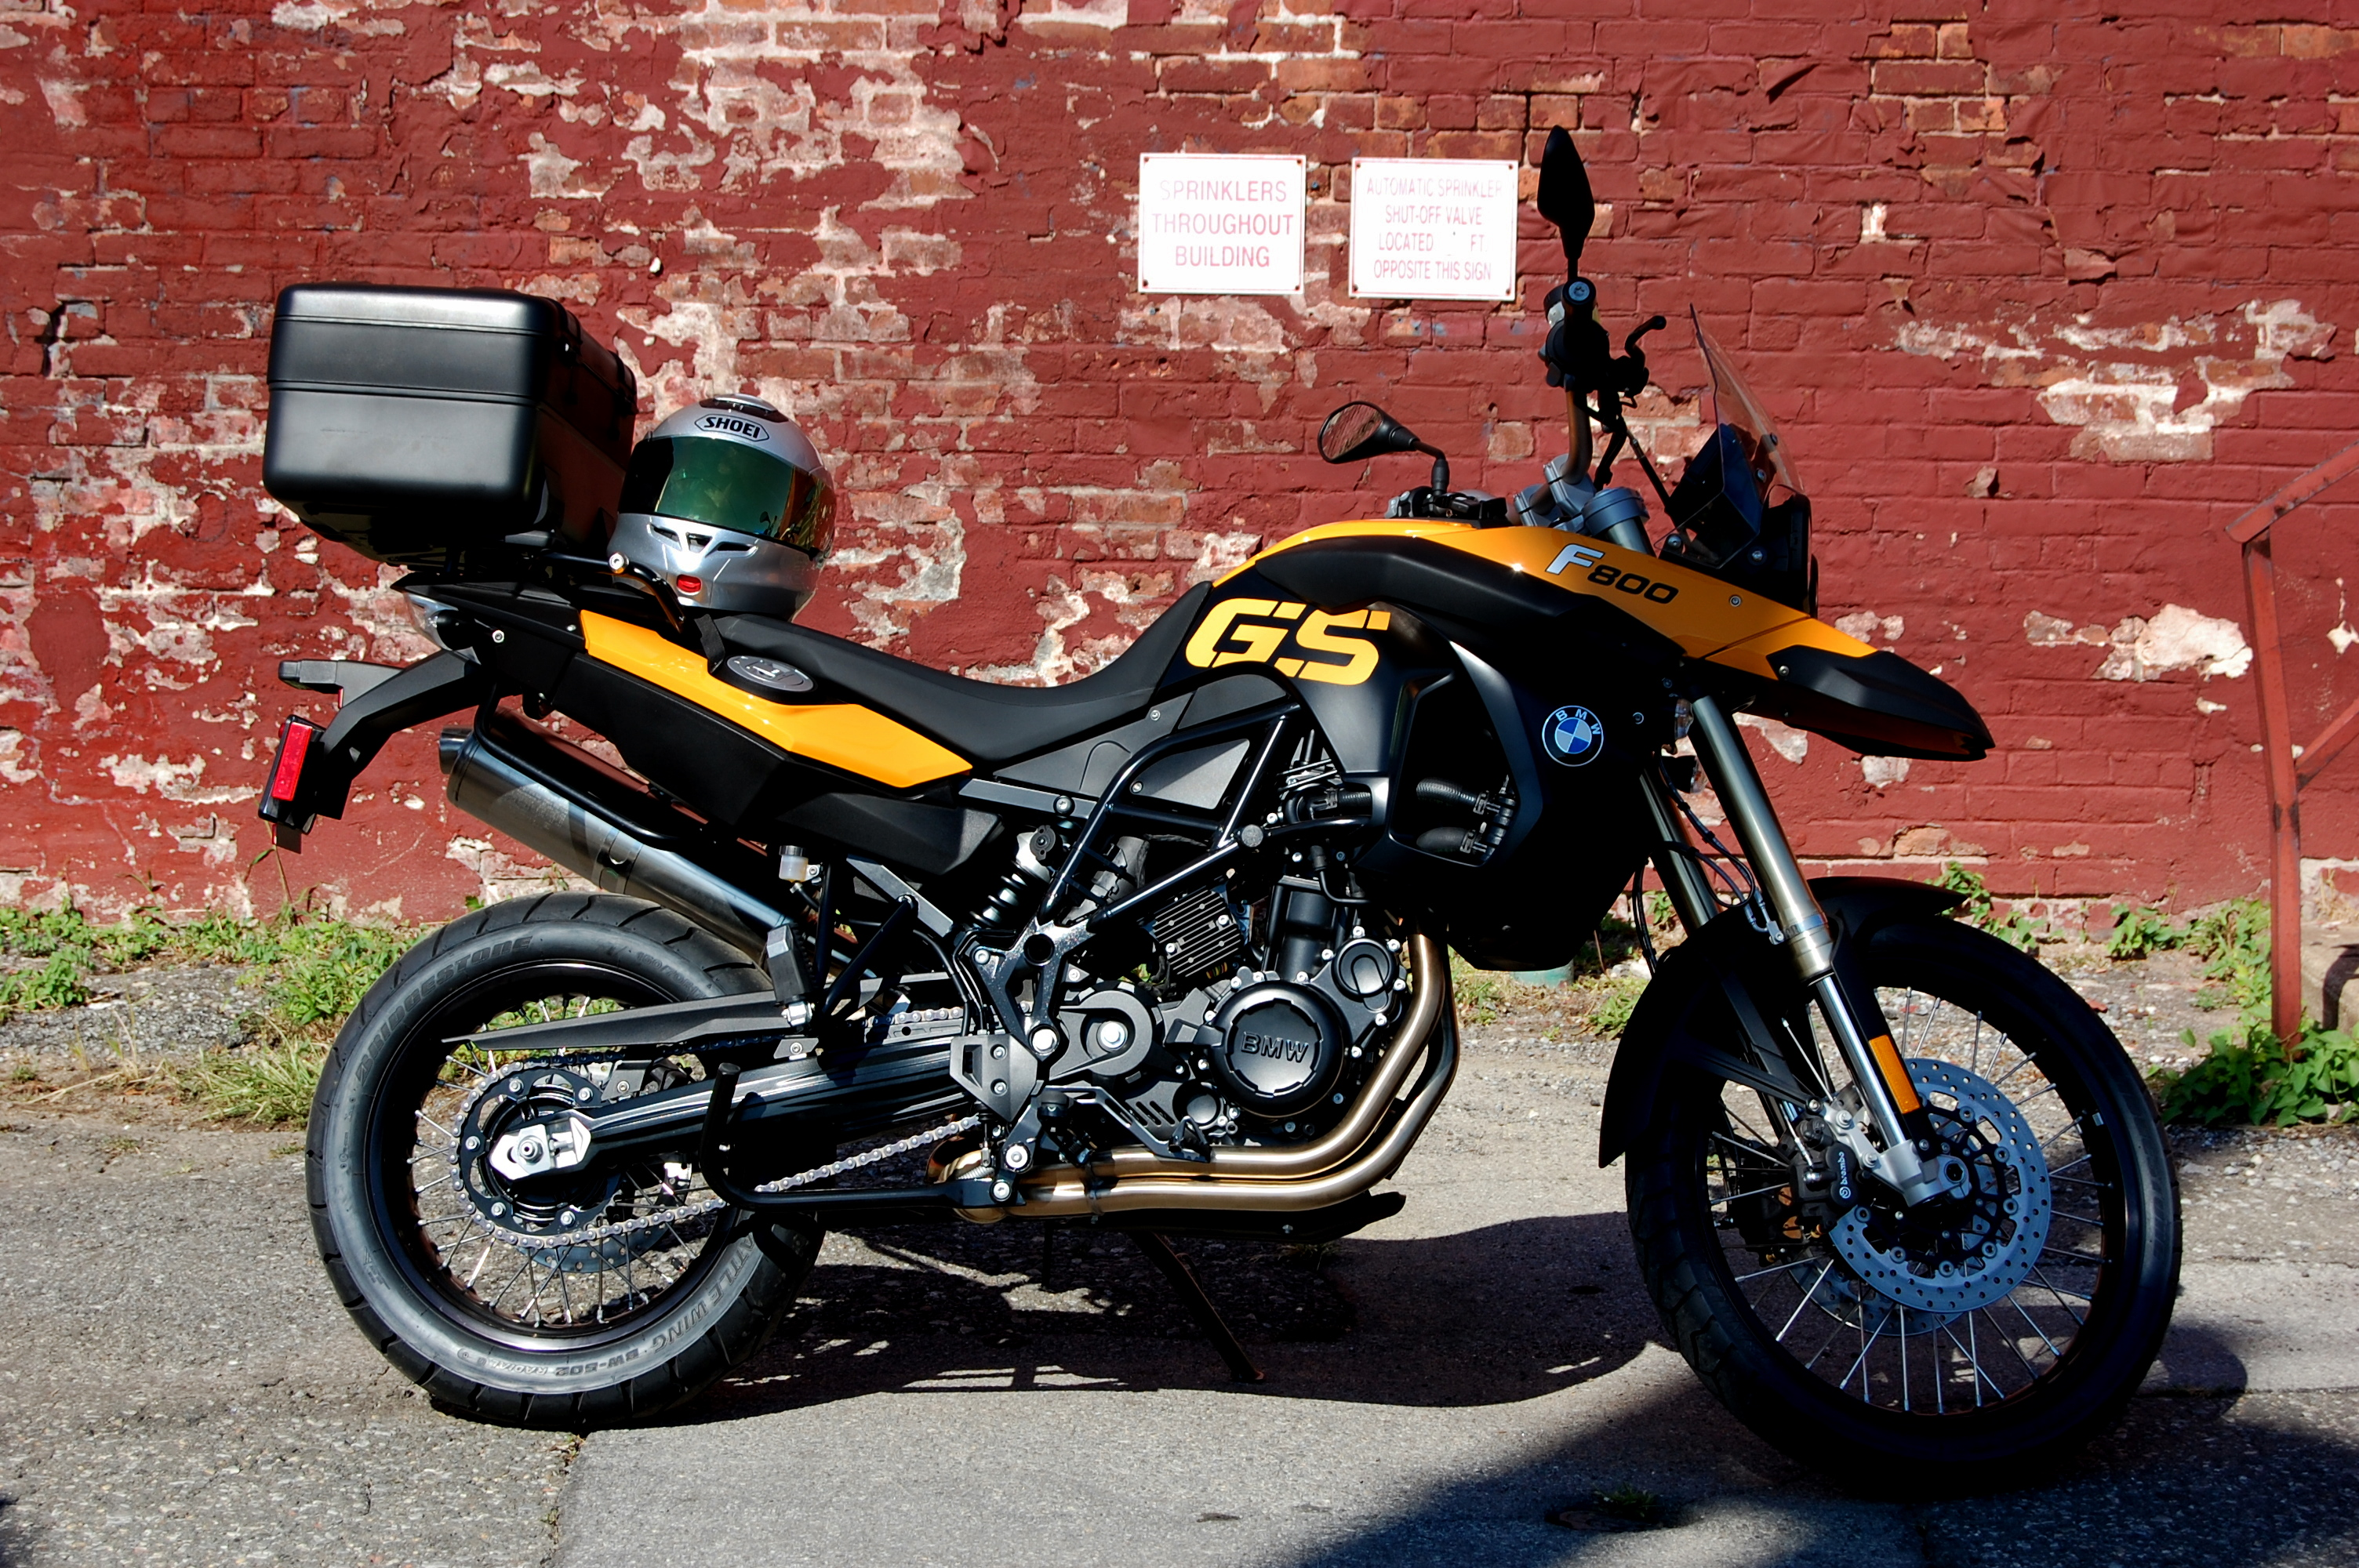 BMW R80GS 1996 images #154855